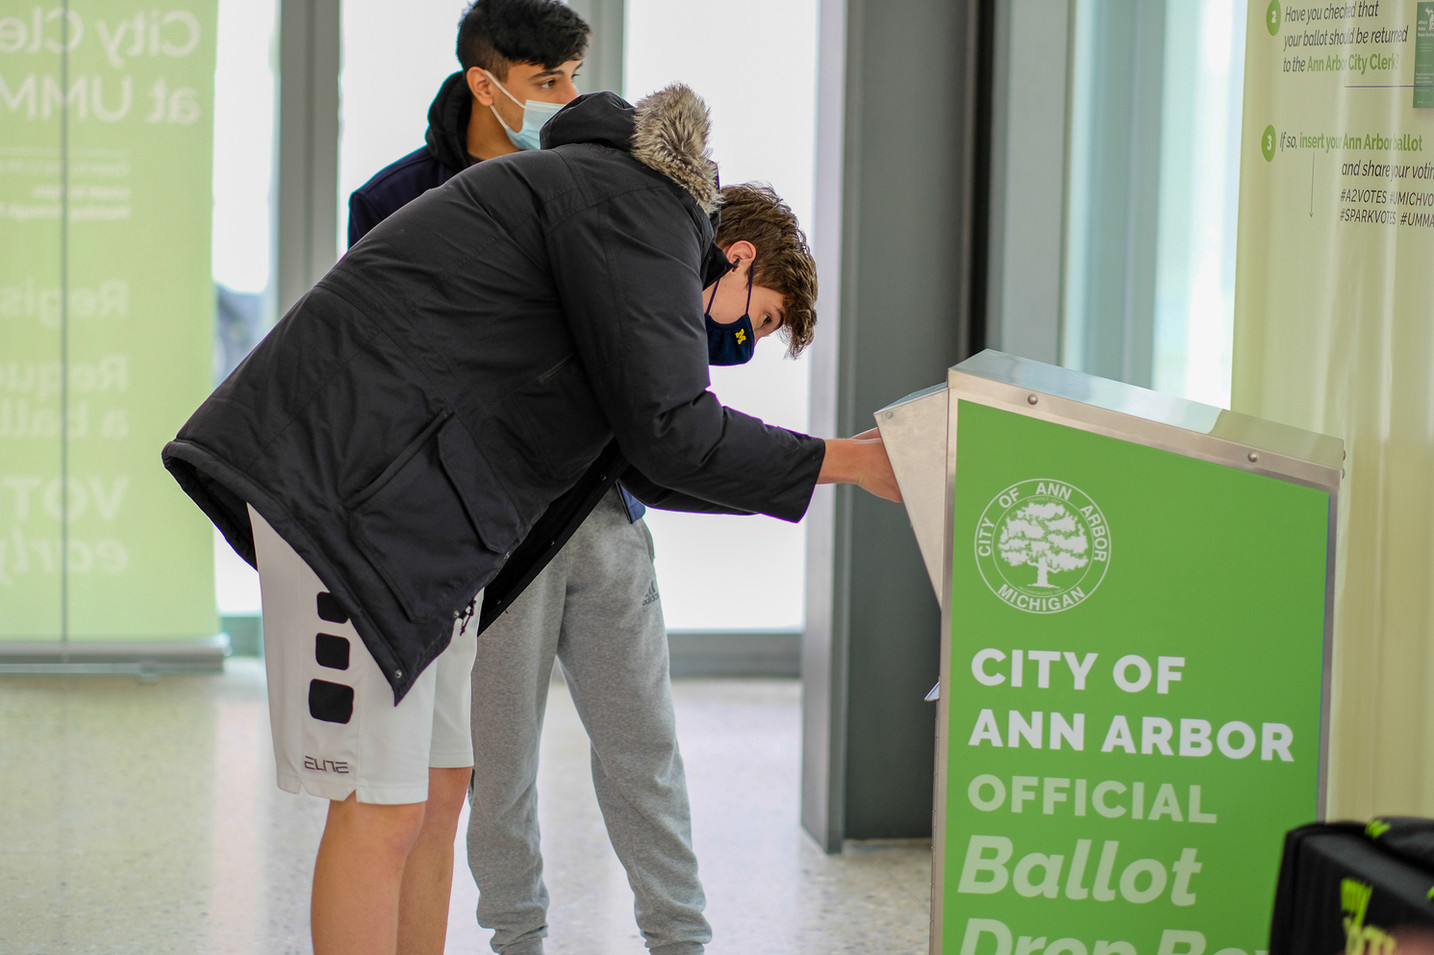 Students could complete the whole voting process — from registering through dropping off their ballot — in one visit.